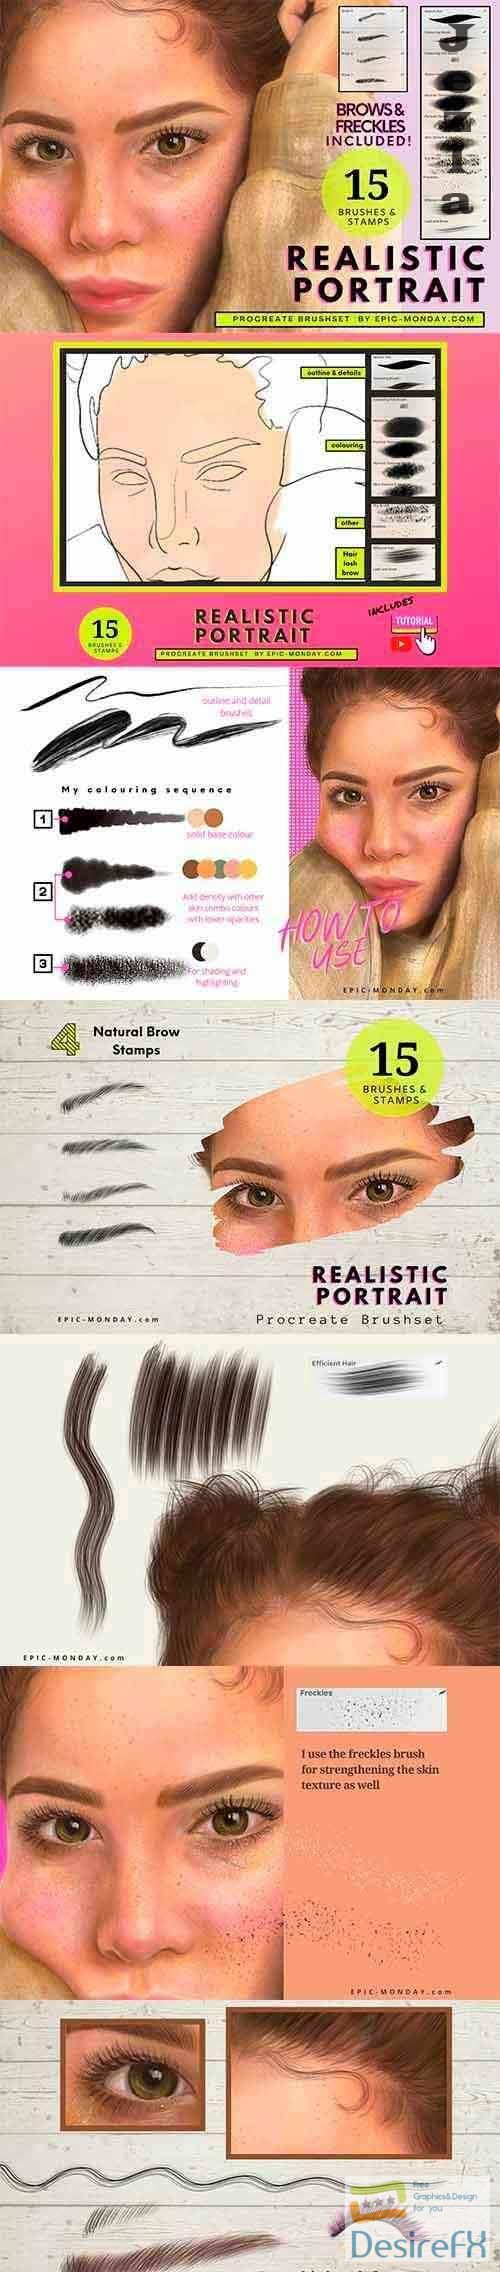 CreativeMarket - Procreate Realistic Portrait Brushes 5490552